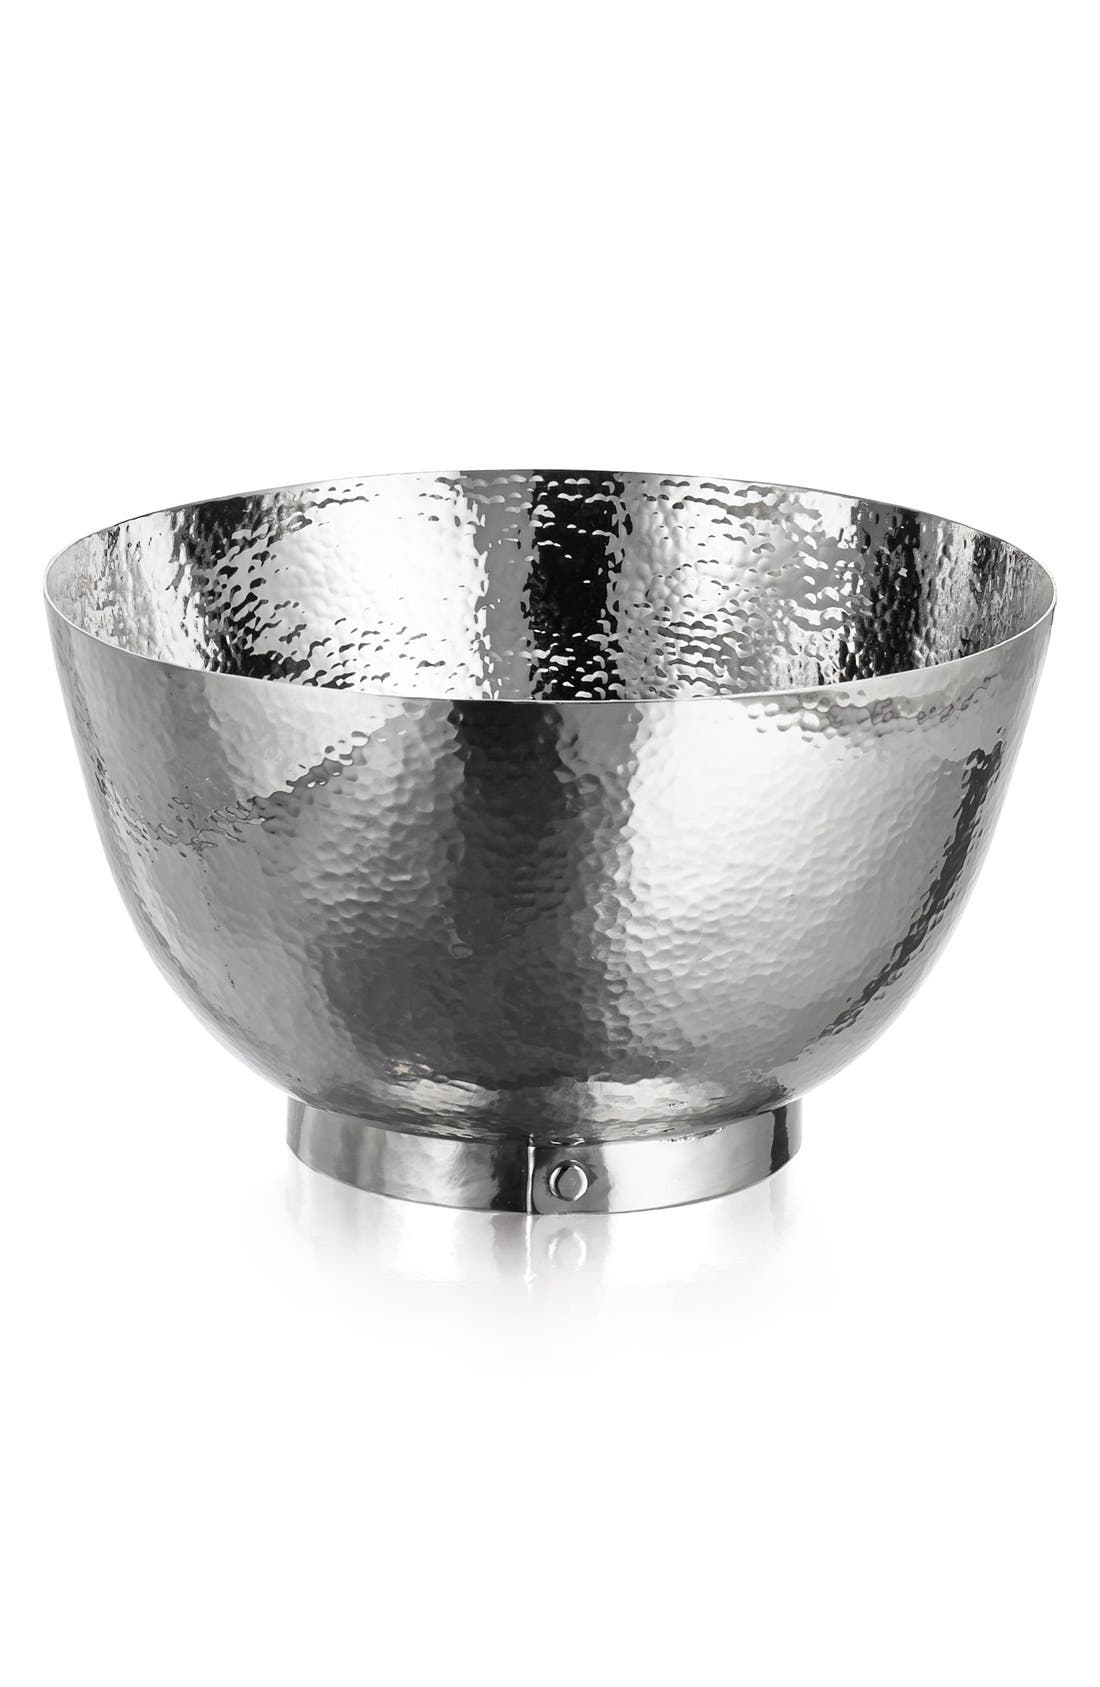 'Rivet' Hammered Stainless Steel Bowl,                             Main thumbnail 1, color,                             040